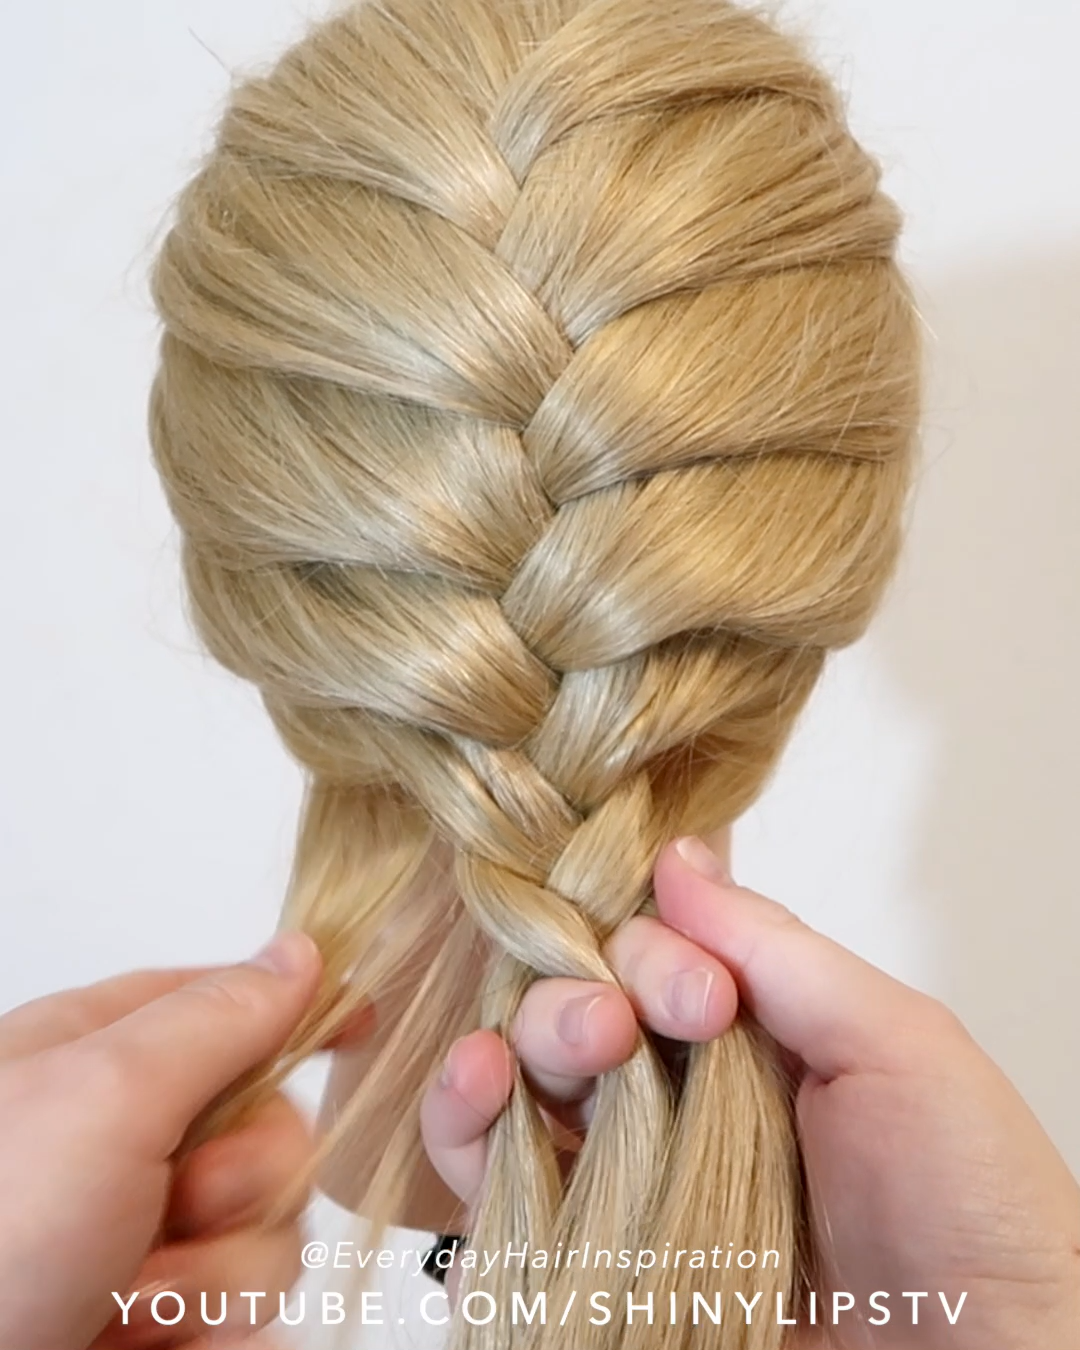 How To French Braid Click Here For The Full Video Braid Click French Full Langhaarf In 2020 Diy Hairstyles Hair Styles French Braid